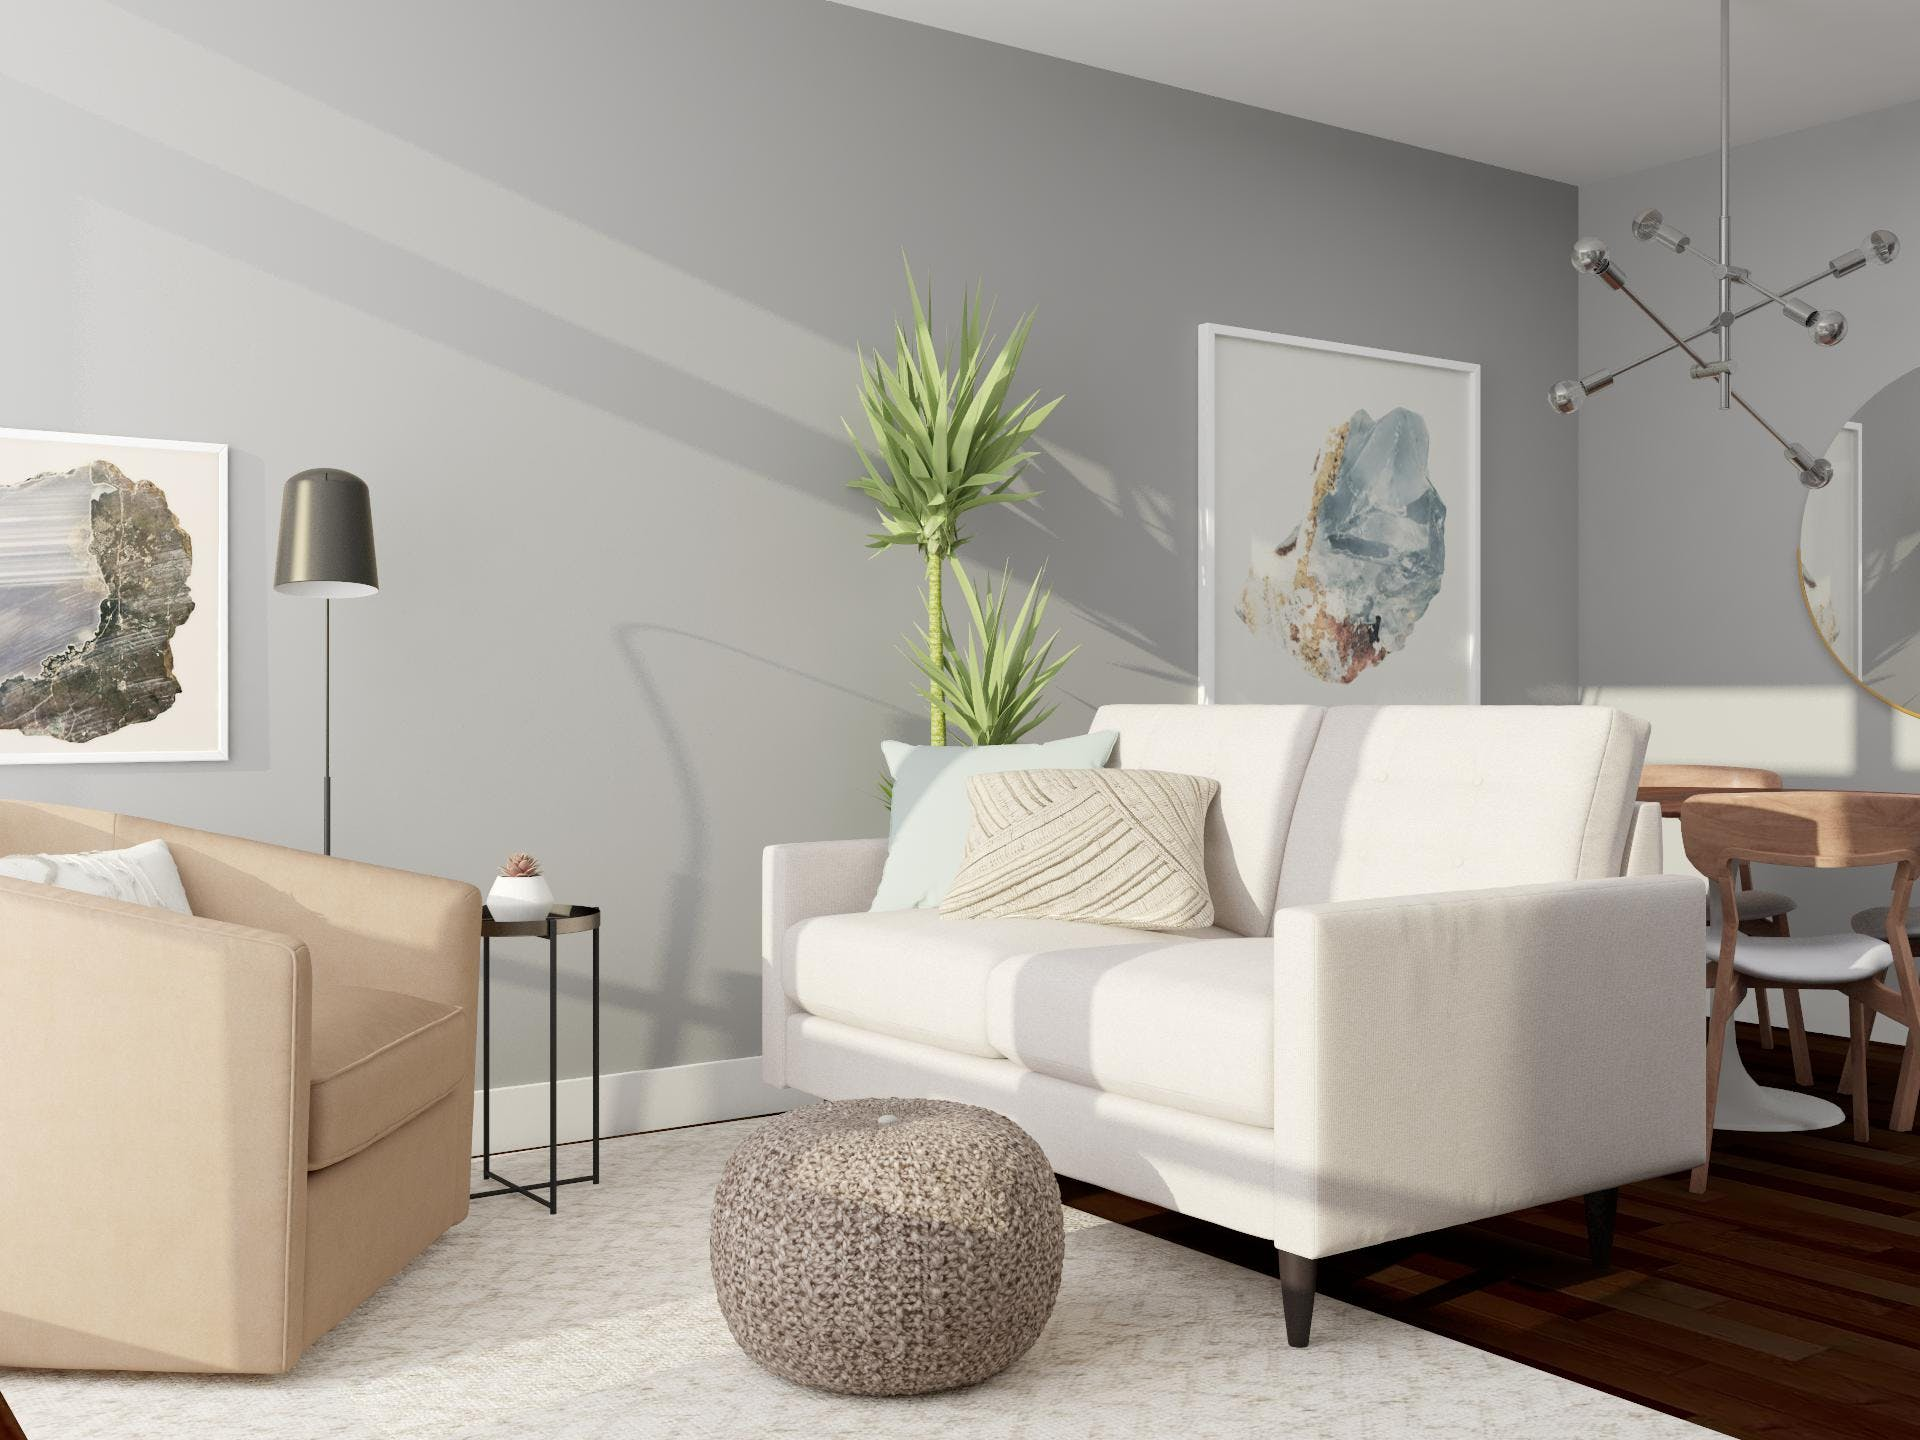 Small Contemporary Space With Cute Organic Touches